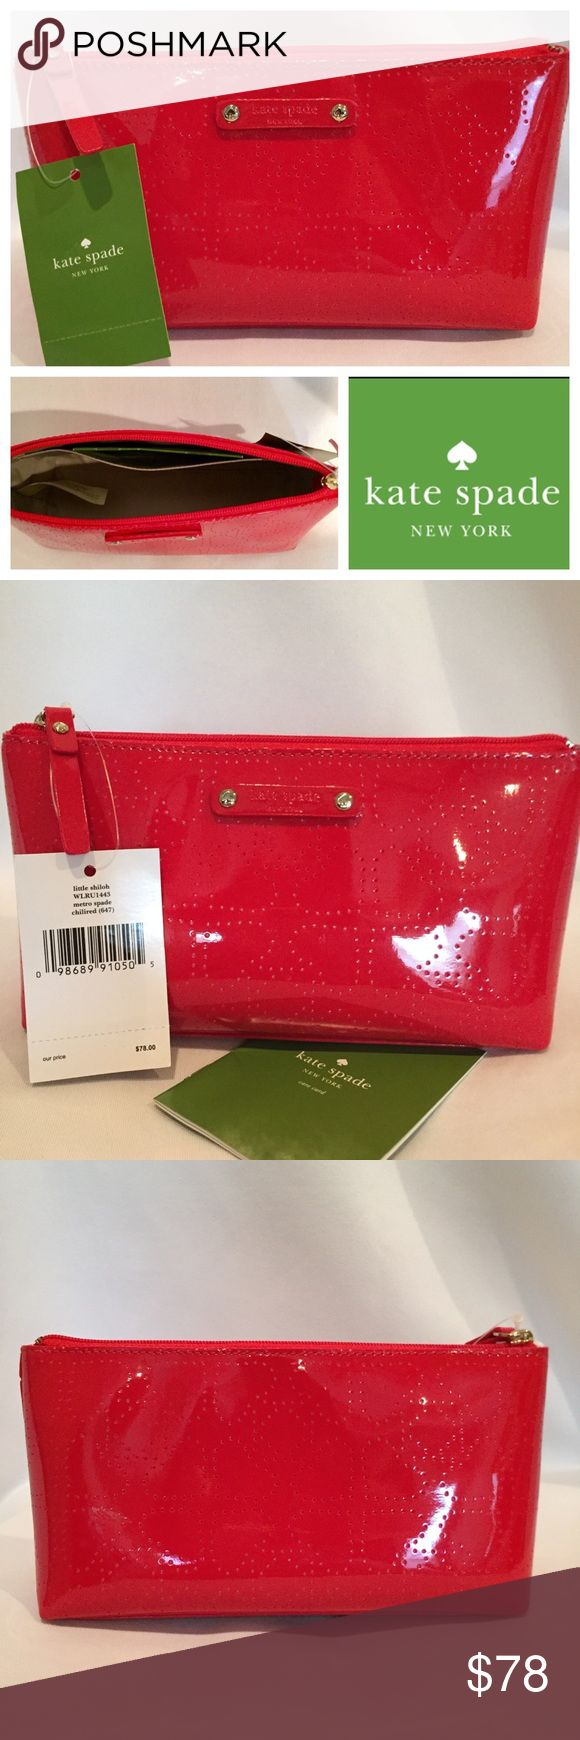 "☘️FINAL⬇️ KATE SPADE Red Shiloh Cosmetic Bag NWT KATE SPADE Red Patent Metro Spade Little Shiloh Cosmetic Bag Pouch New With Tags  Retail Price: $78.00  Color: Chili Red  Exterior Features Subtle Laser Perforated Signature Spade Pattern & Logo Plaque Interior Features Solid Nylon Lining & One Slip Pocket Gold Tone Hardware  Measures Approximately 7"" (L) x 4"" (H) x 2"" (D) Zip Top Closure  Includes Care Card  🎁 Great Gift Idea! 🎁 Smoke Free Home  💯 Authentic kate spade Bags Cosmetic Bags…"